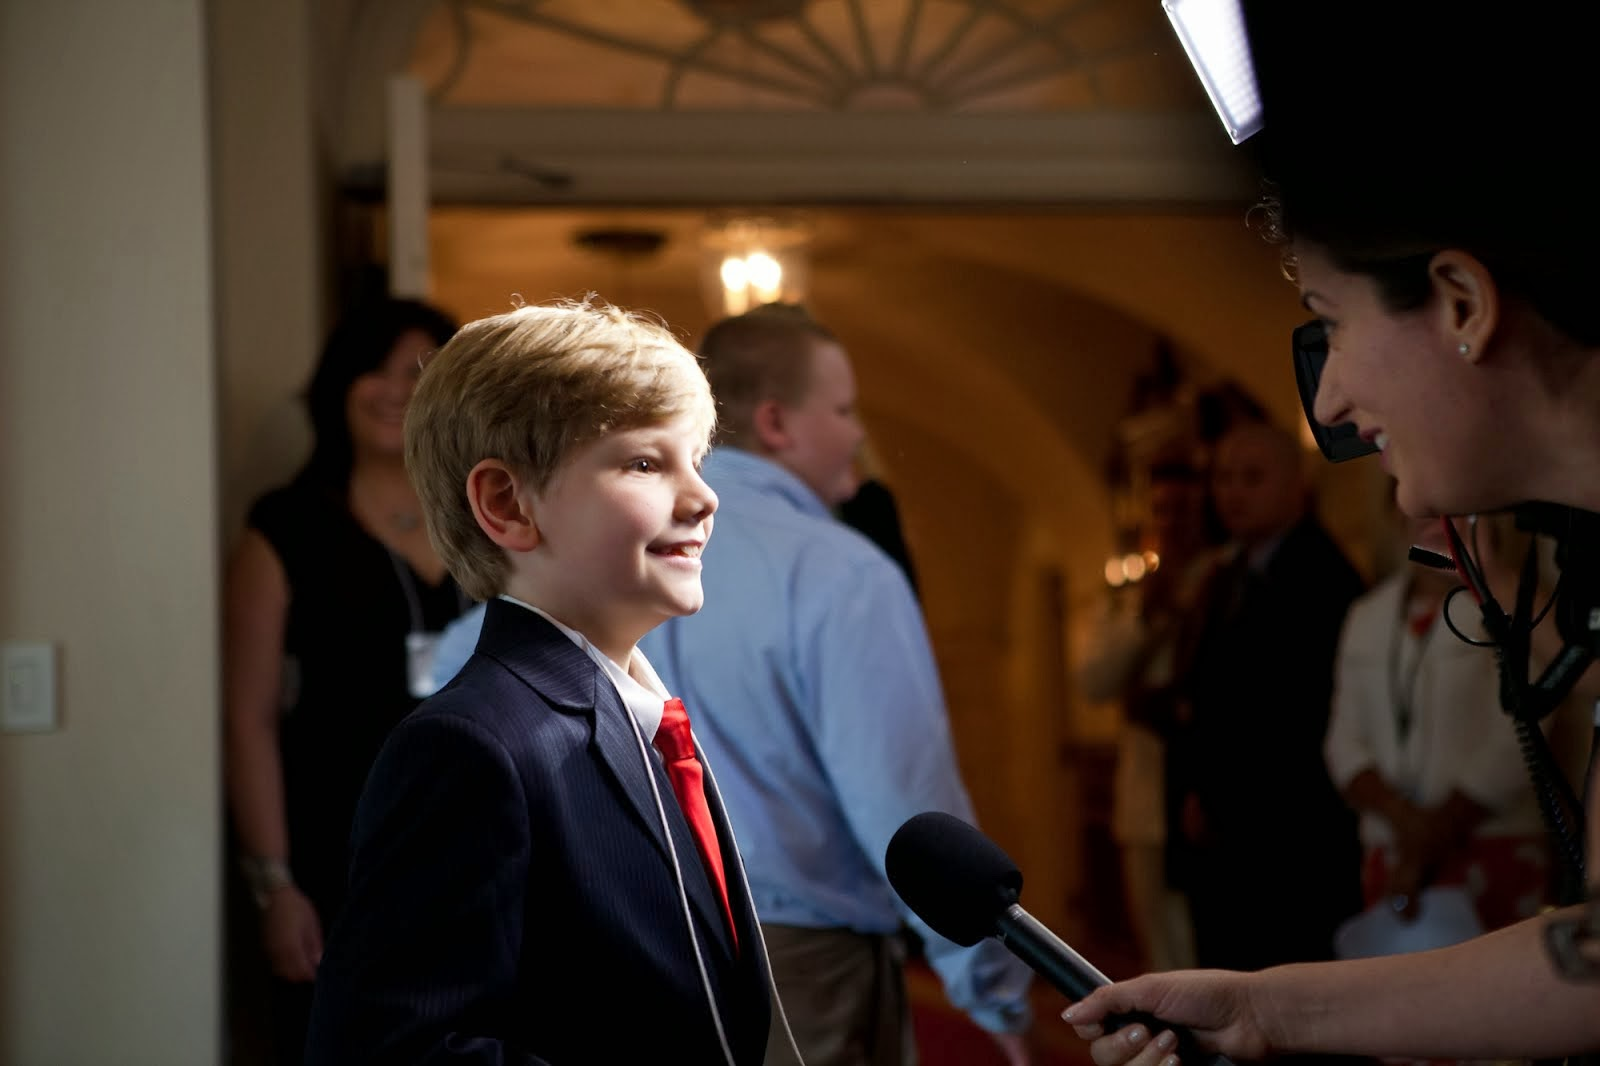 Logan with White House Press Corps